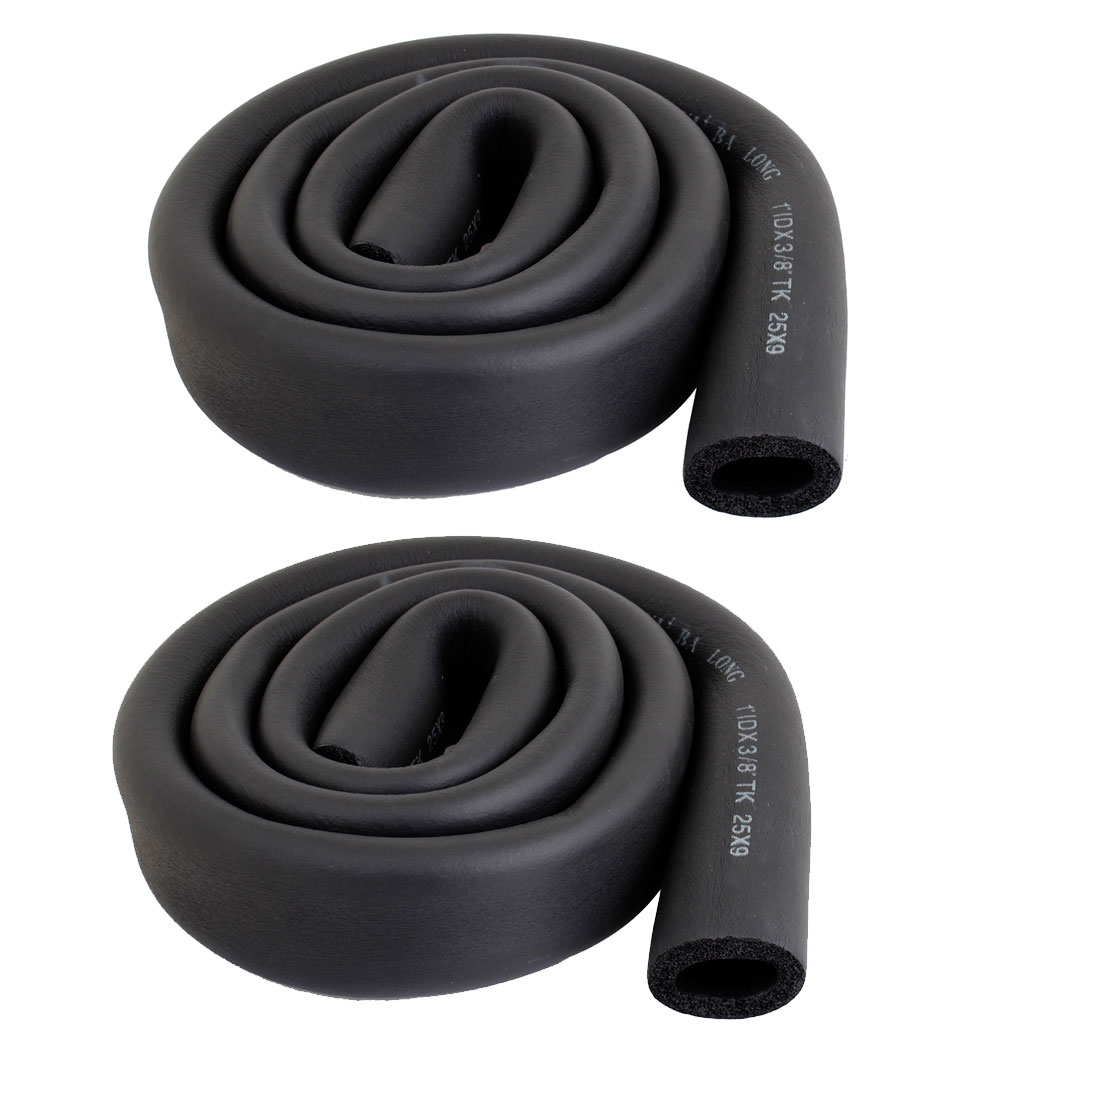 "2 Pcs 1"" x 3/8"" Air Conditioner Foam Heat Insulated Pipe Black"